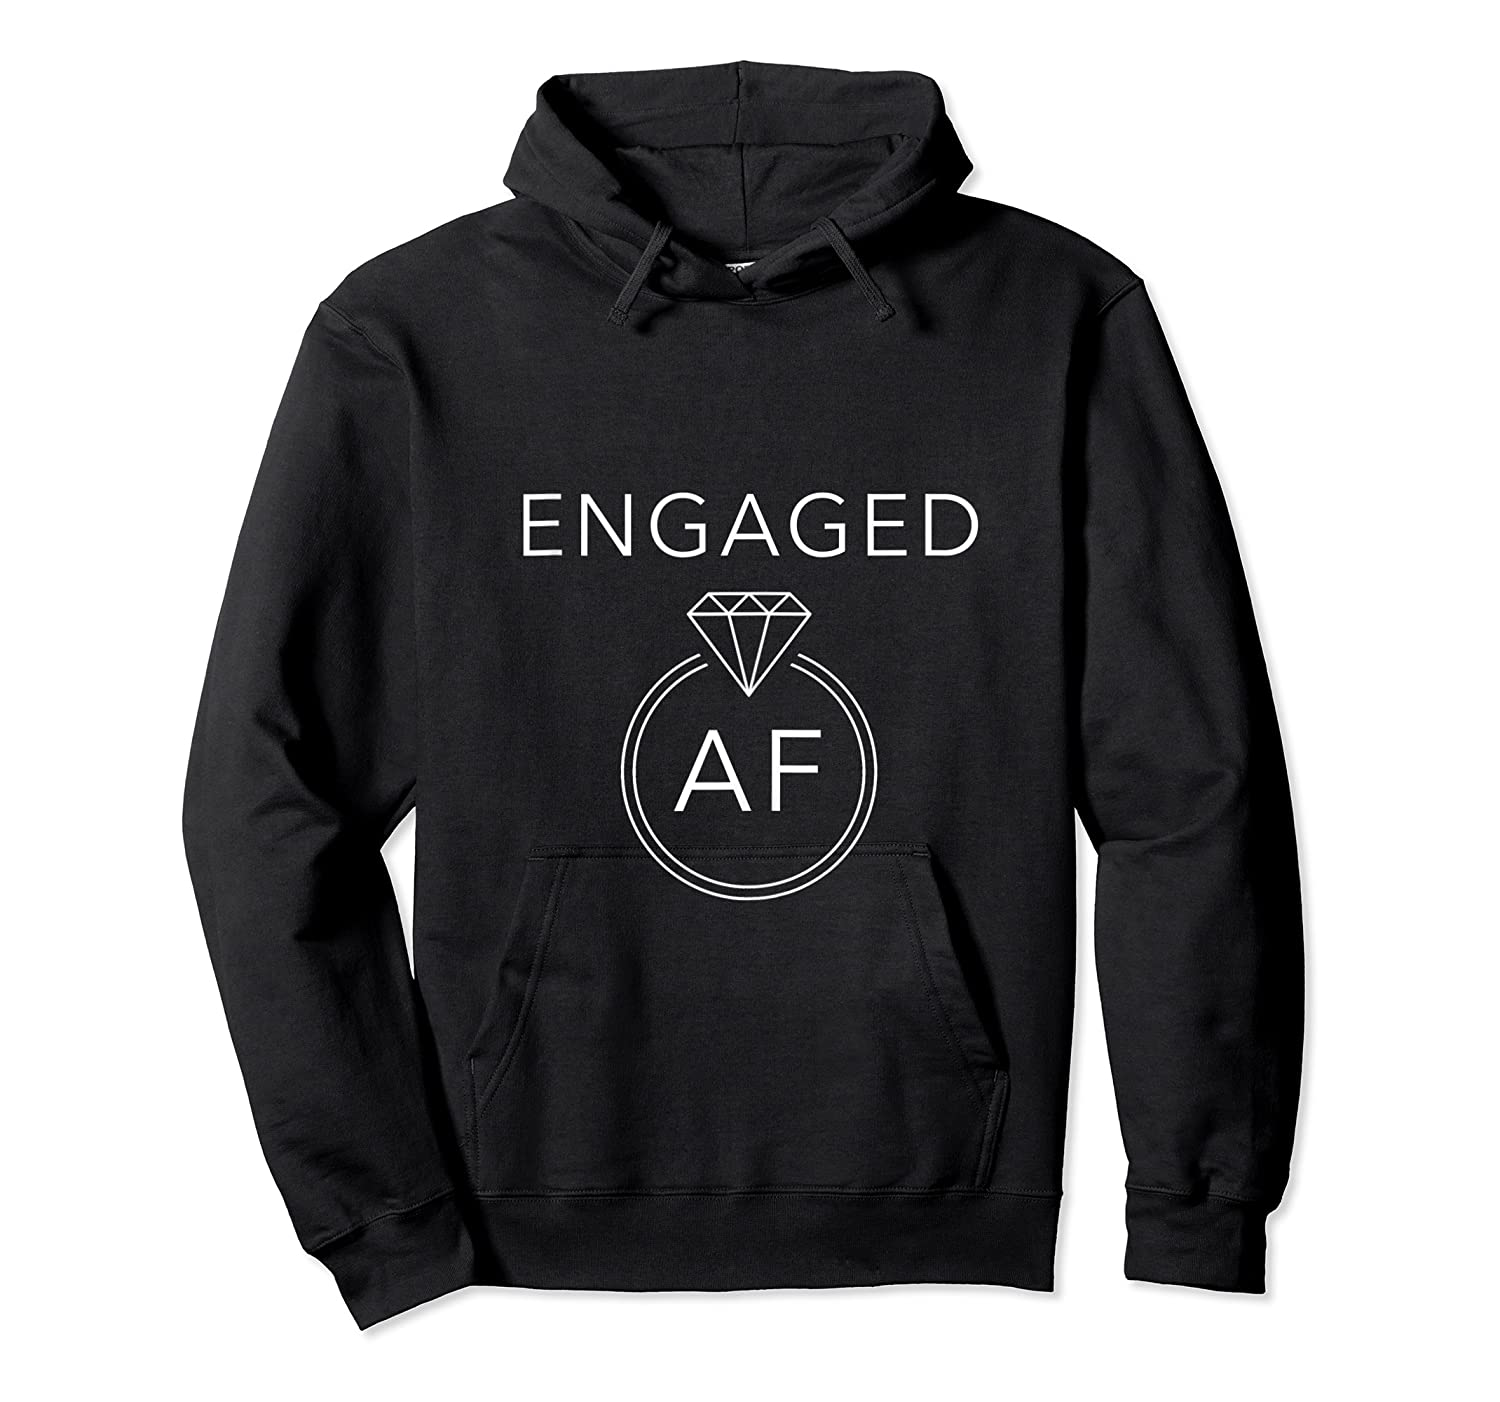 Engaged Af Tank Top Shirts Unisex Pullover Hoodie